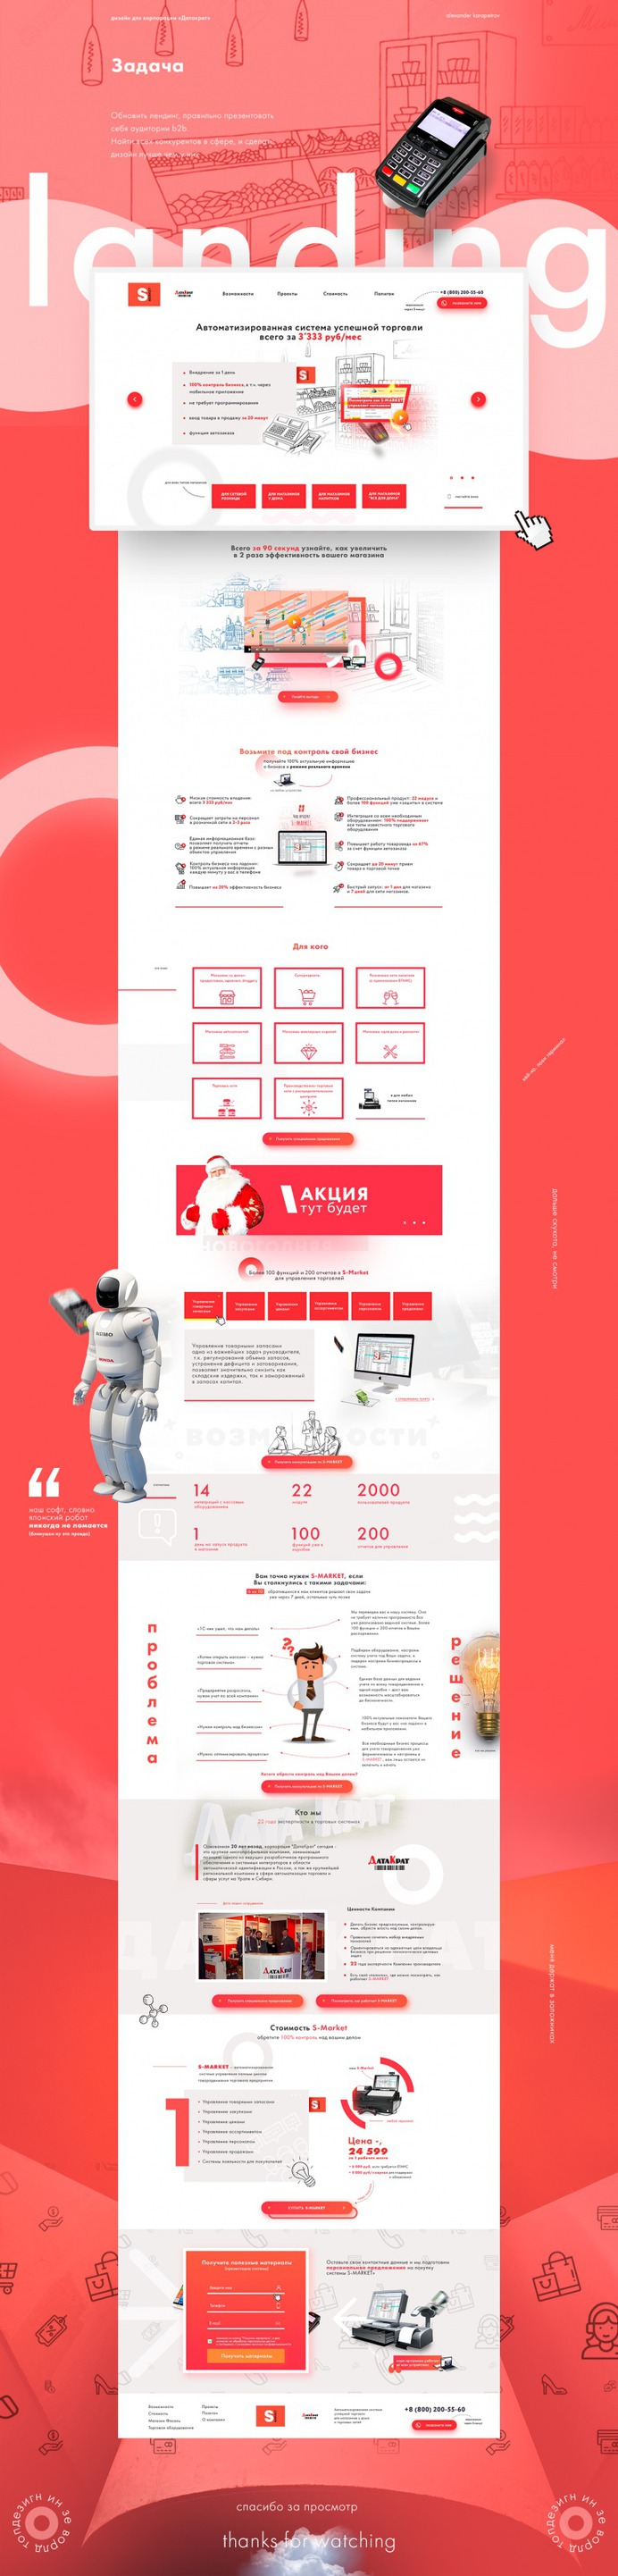 Landing page for a software company